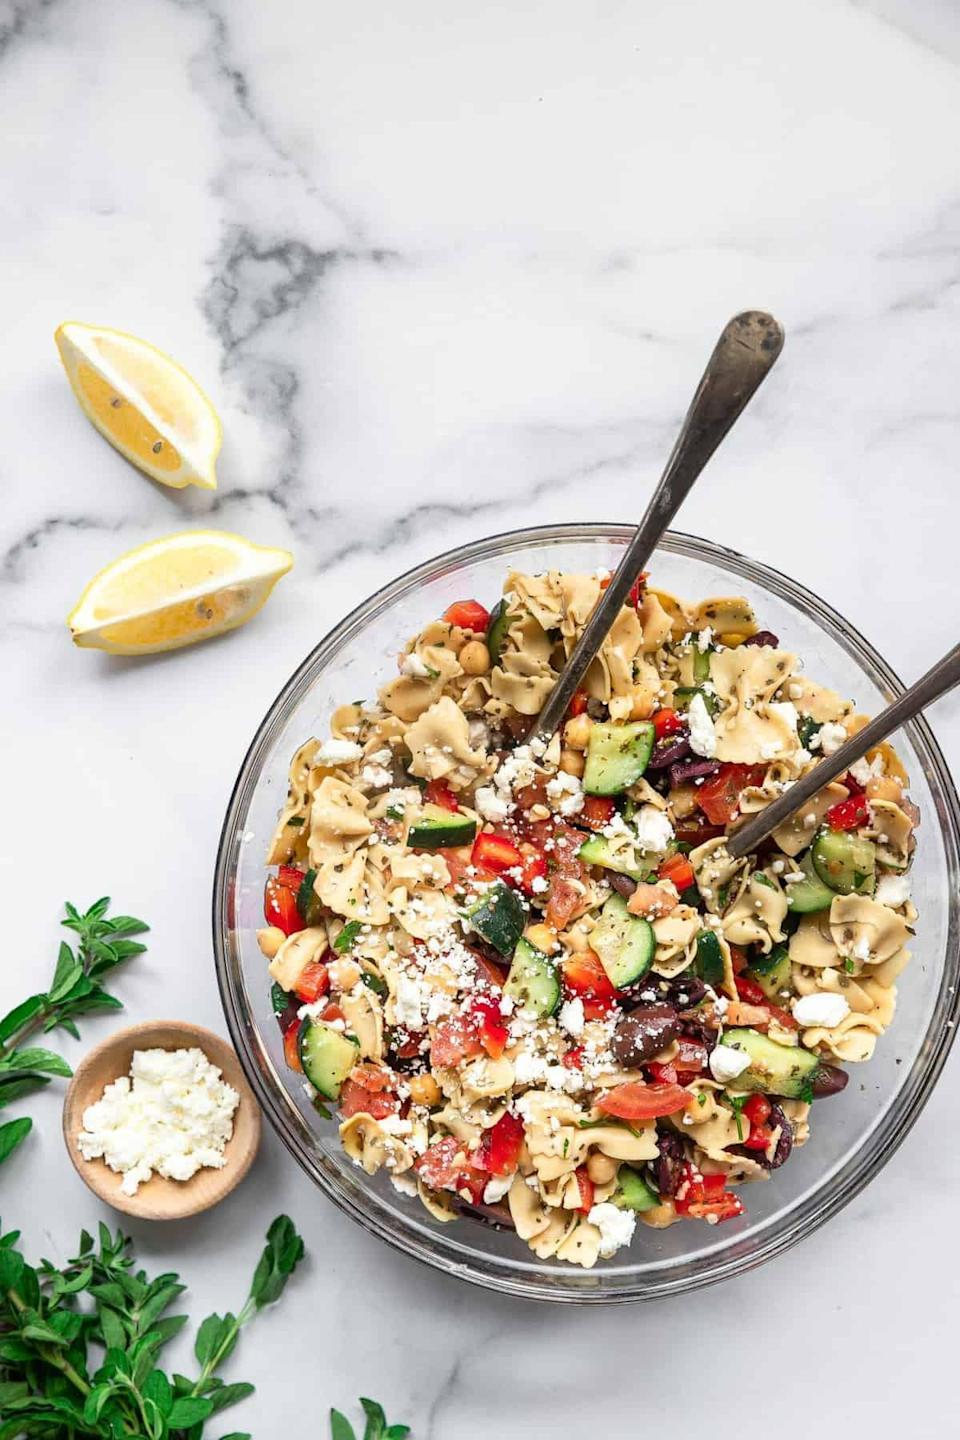 """<p>If you want a meal that'll fill you up, try this chickpea pasta salad. Made complete with rich feta, crunchy cucumbers, juicy tomatoes, salty olives, and a tangy lemon dressing, this salad is too good to be true. Serve it cold for best results.</p> <p><strong>Get the recipe:</strong> <a href=""""https://www.foodfaithfitness.com/mediterranean-chickpea-pasta-salad/"""" class=""""link rapid-noclick-resp"""" rel=""""nofollow noopener"""" target=""""_blank"""" data-ylk=""""slk:Mediterranean chickpea pasta salad"""">Mediterranean chickpea pasta salad</a></p>"""